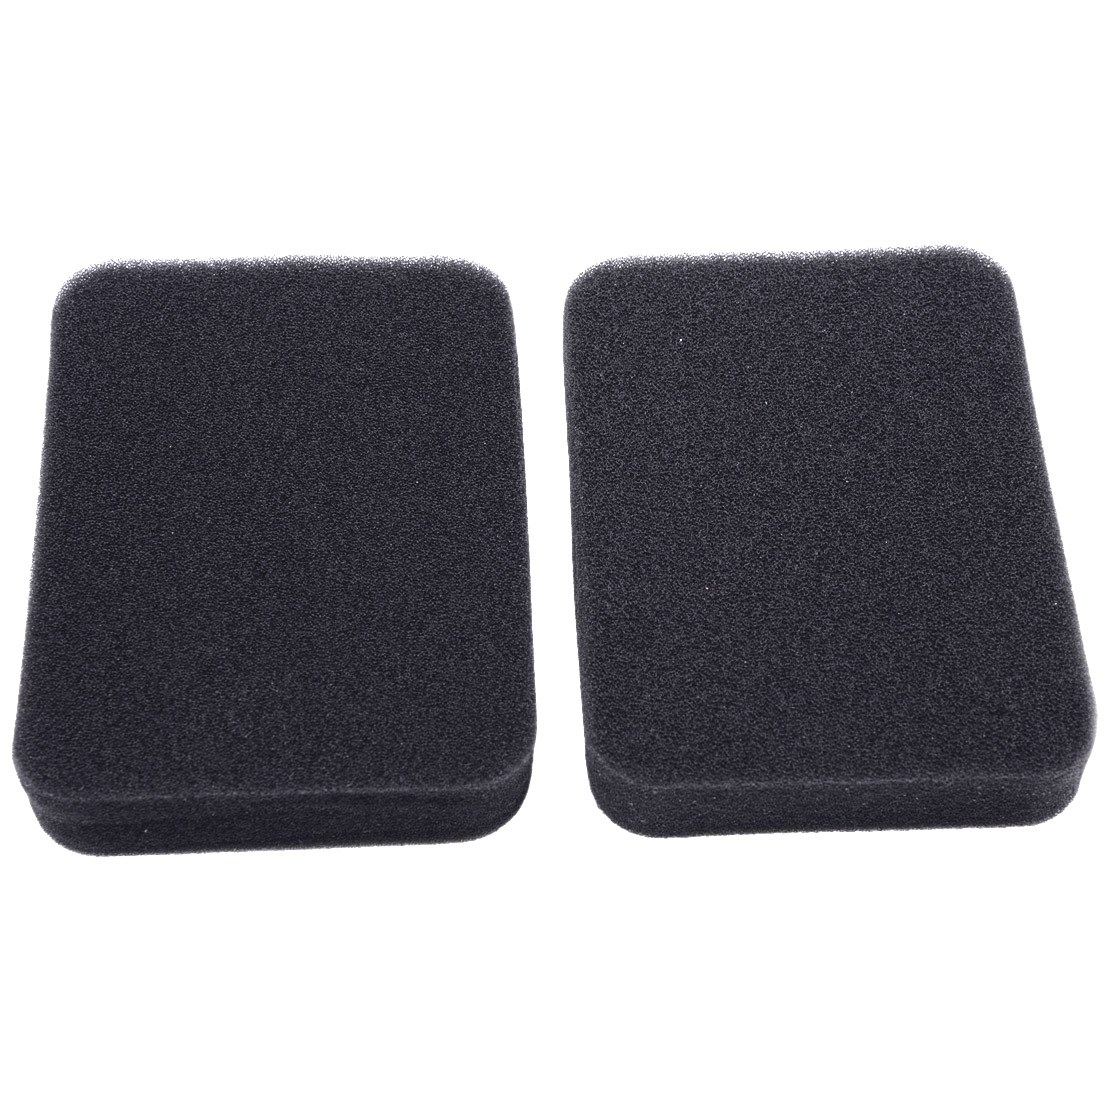 LETAOSK 2pcs Foam Air Filter Fit for Honda GX240 GX270 GX340 GX390 17211 899 000 Replacement Power Tools Accessories-in Tool Parts from Tools